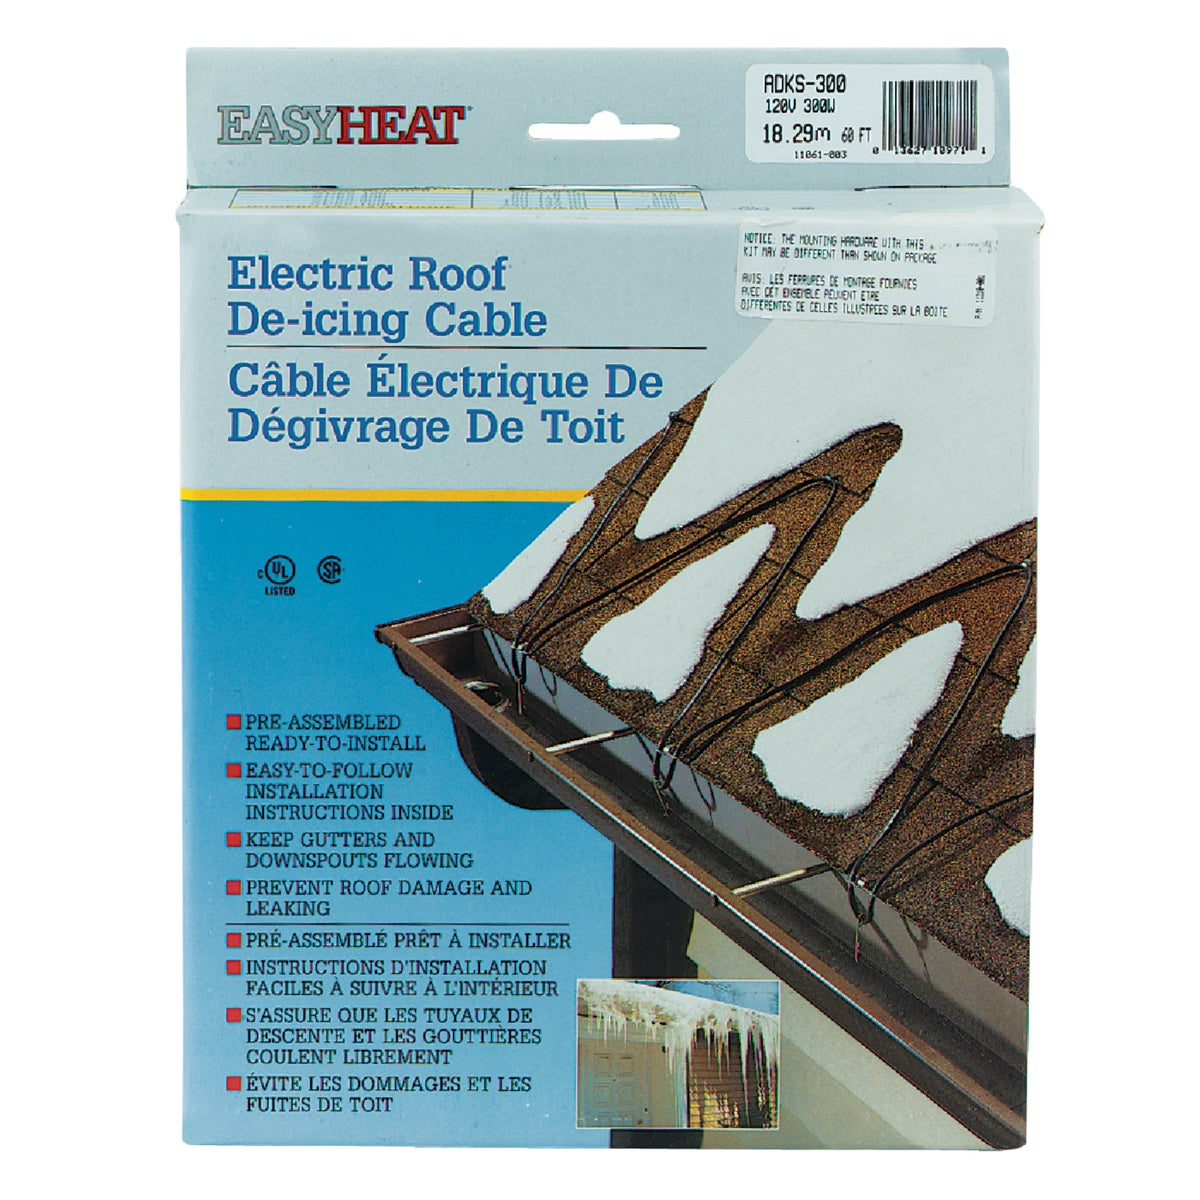 60' ROOF CABLE - ADKS300 by Easy Heat Inc